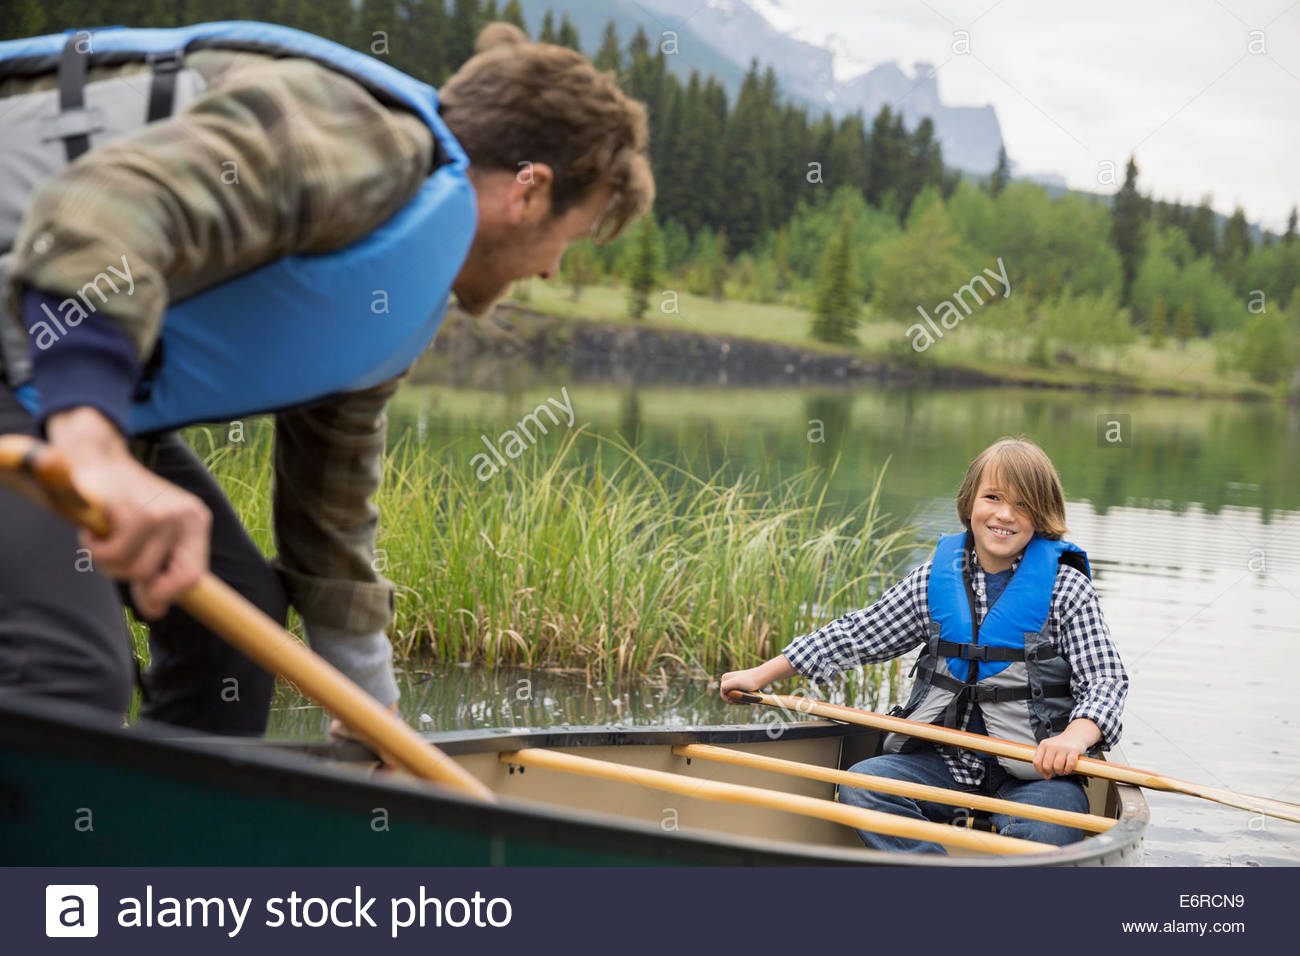 Father helping son out of canoe - Stock Image